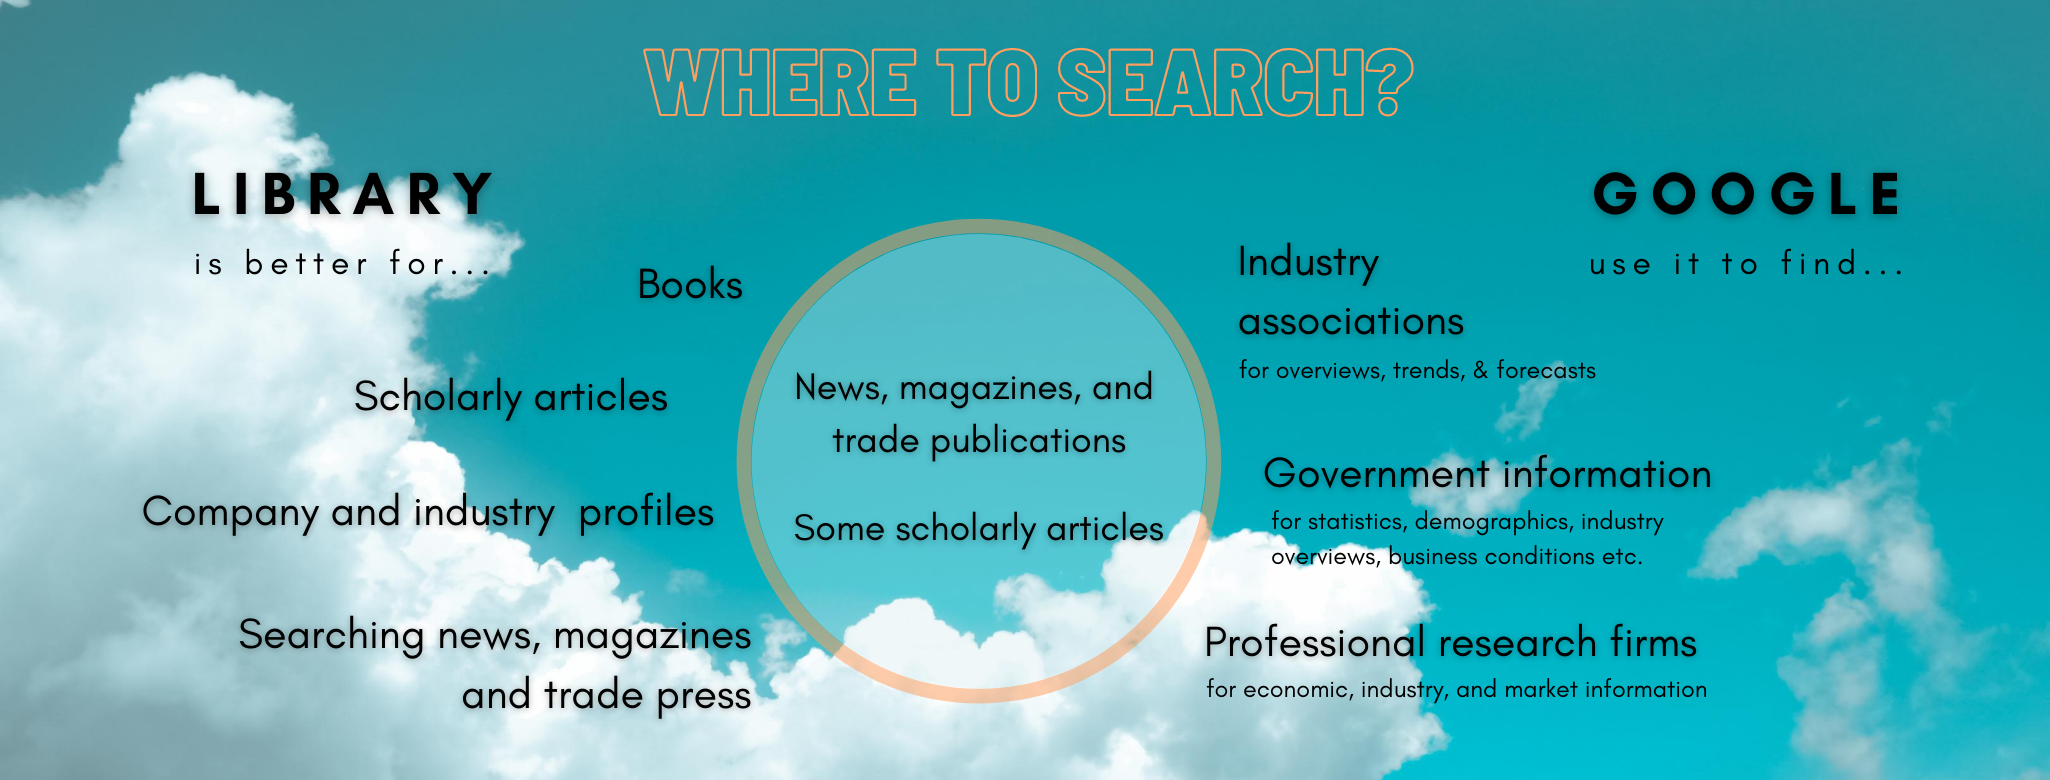 Where to search?   The library is better for books, scholarly articles, company and industry profiles, searching news, magazines, and trade press.  Use google to find industry associations, government information, and professional research firms.   You can use both for news, magazines, trade publications and some scholarly articles.